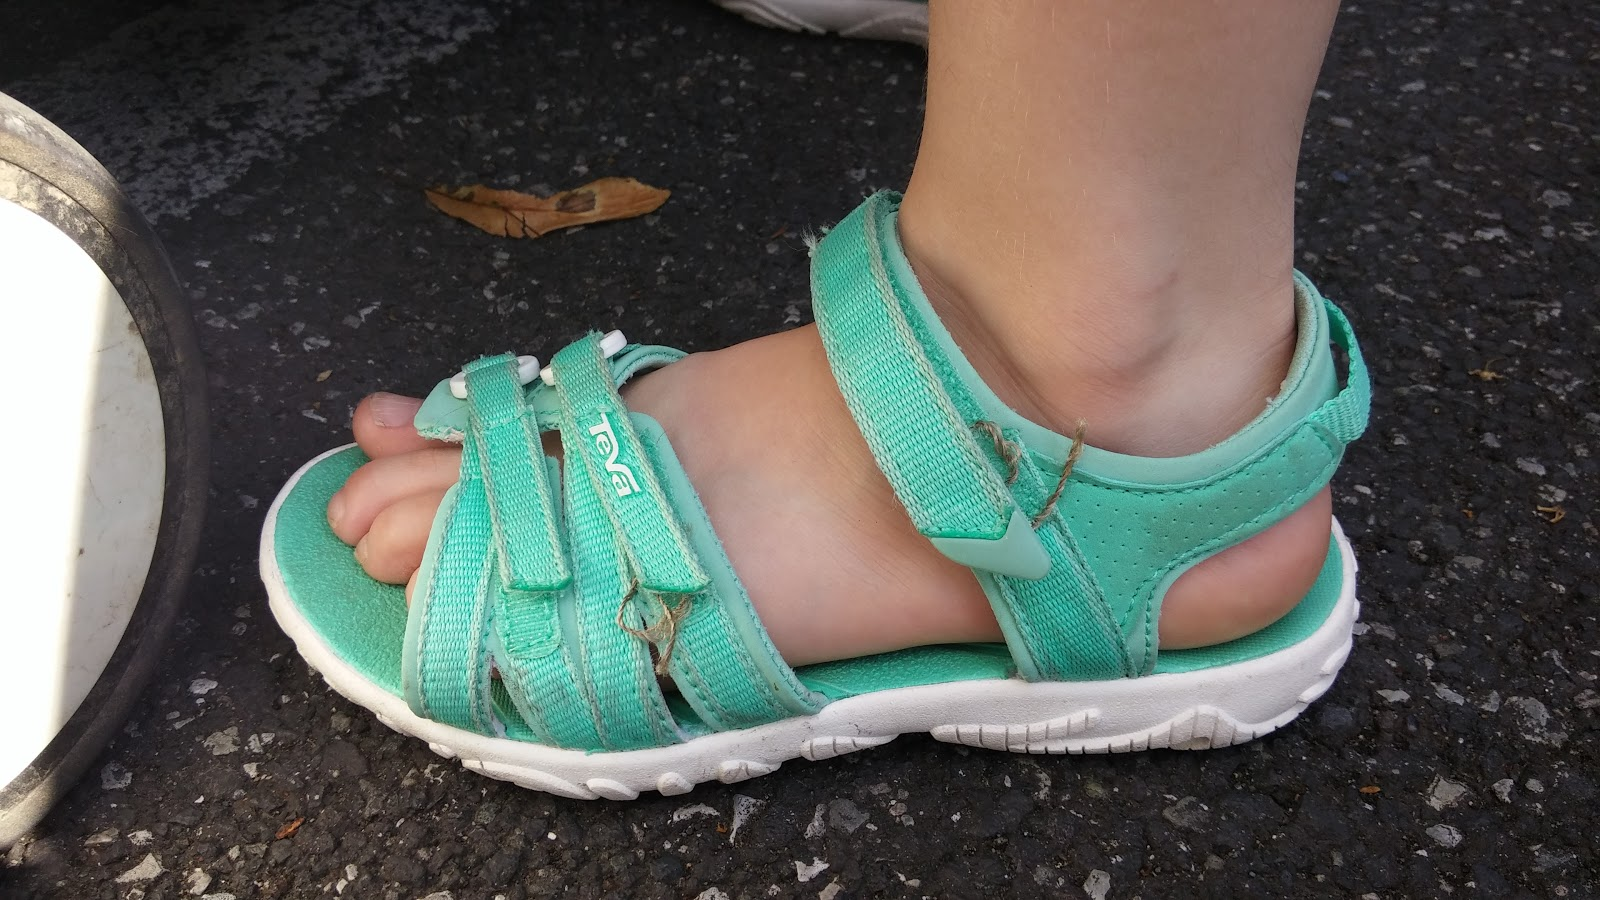 facb2fc2831791 Teva sandals   Perfect footwear for the hot weather - This day I ...